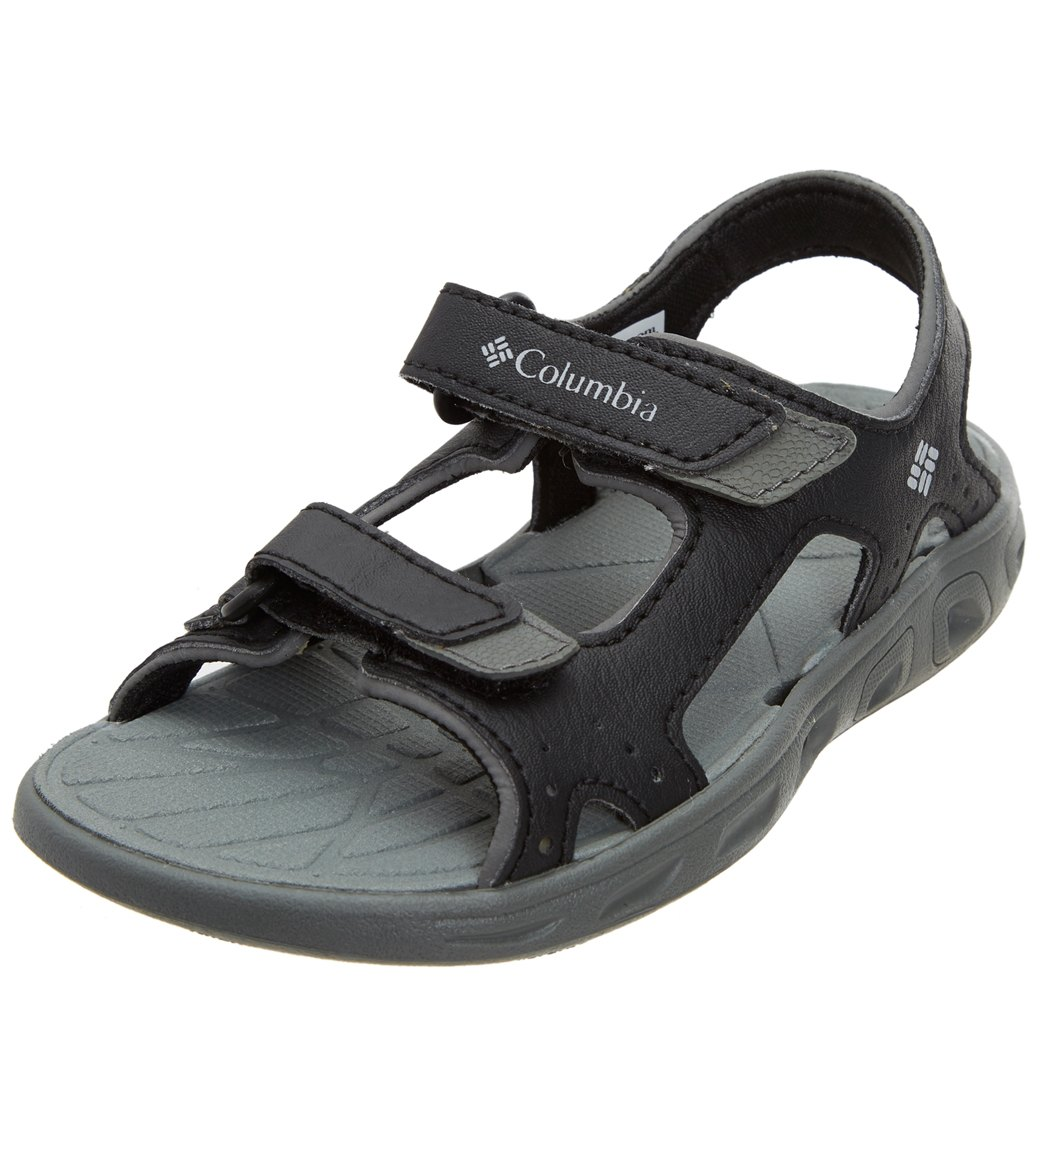 c10dd334b Columbia Youth (8-13) Techsun Vent Flip Flop at SwimOutlet.com